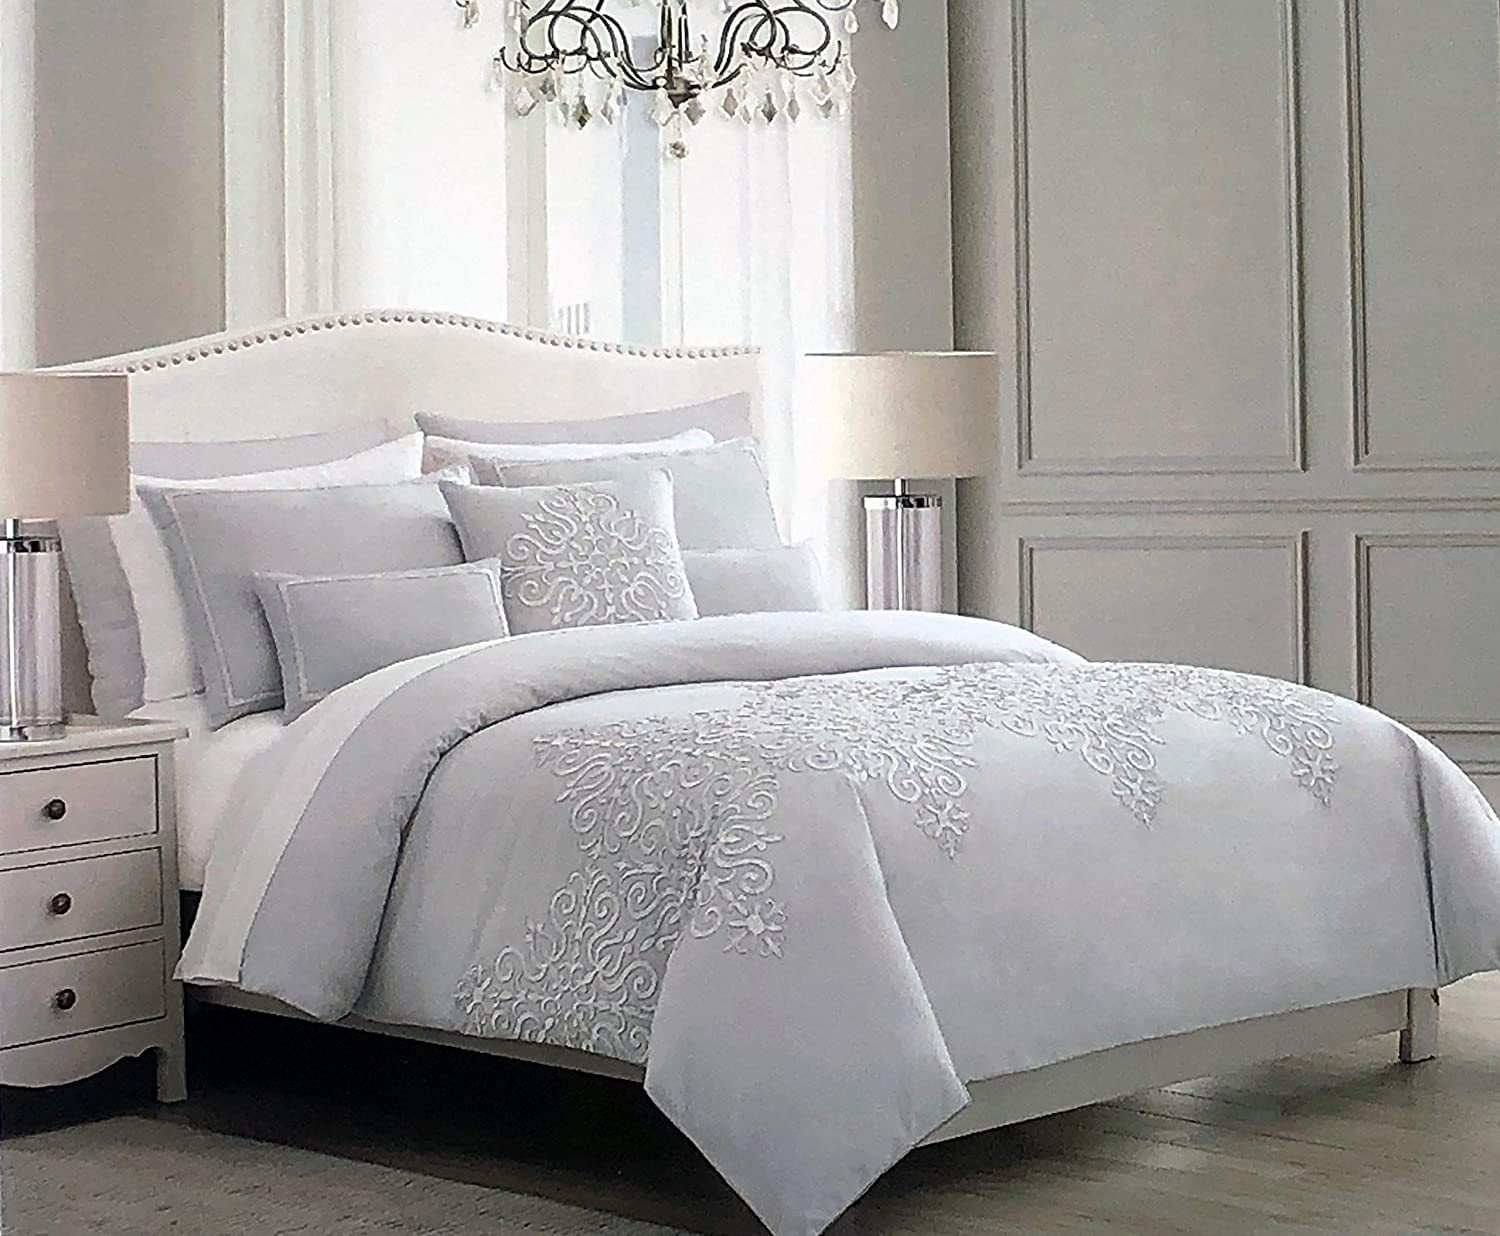 Tahari 3pc Duvet Cover Set Solid Light Gray with an Embroidered Silver Metallic Thread Scroll Pattern Comforter Quilt Cover Shams 100% Cotton Luxury (Queen)